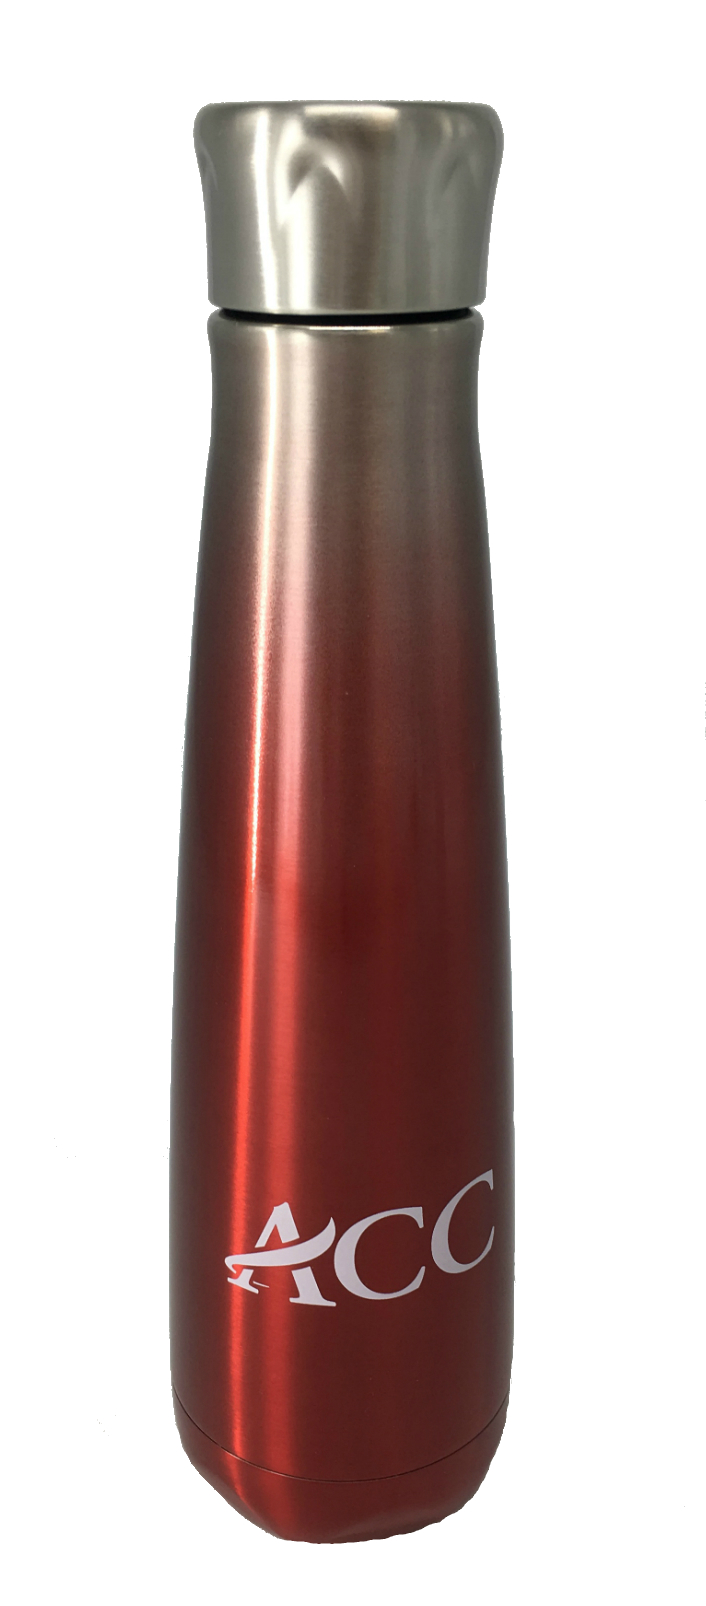 ACC Logo Peristyle Stainless Steel Insulated Bottle (SKU 103351091062)